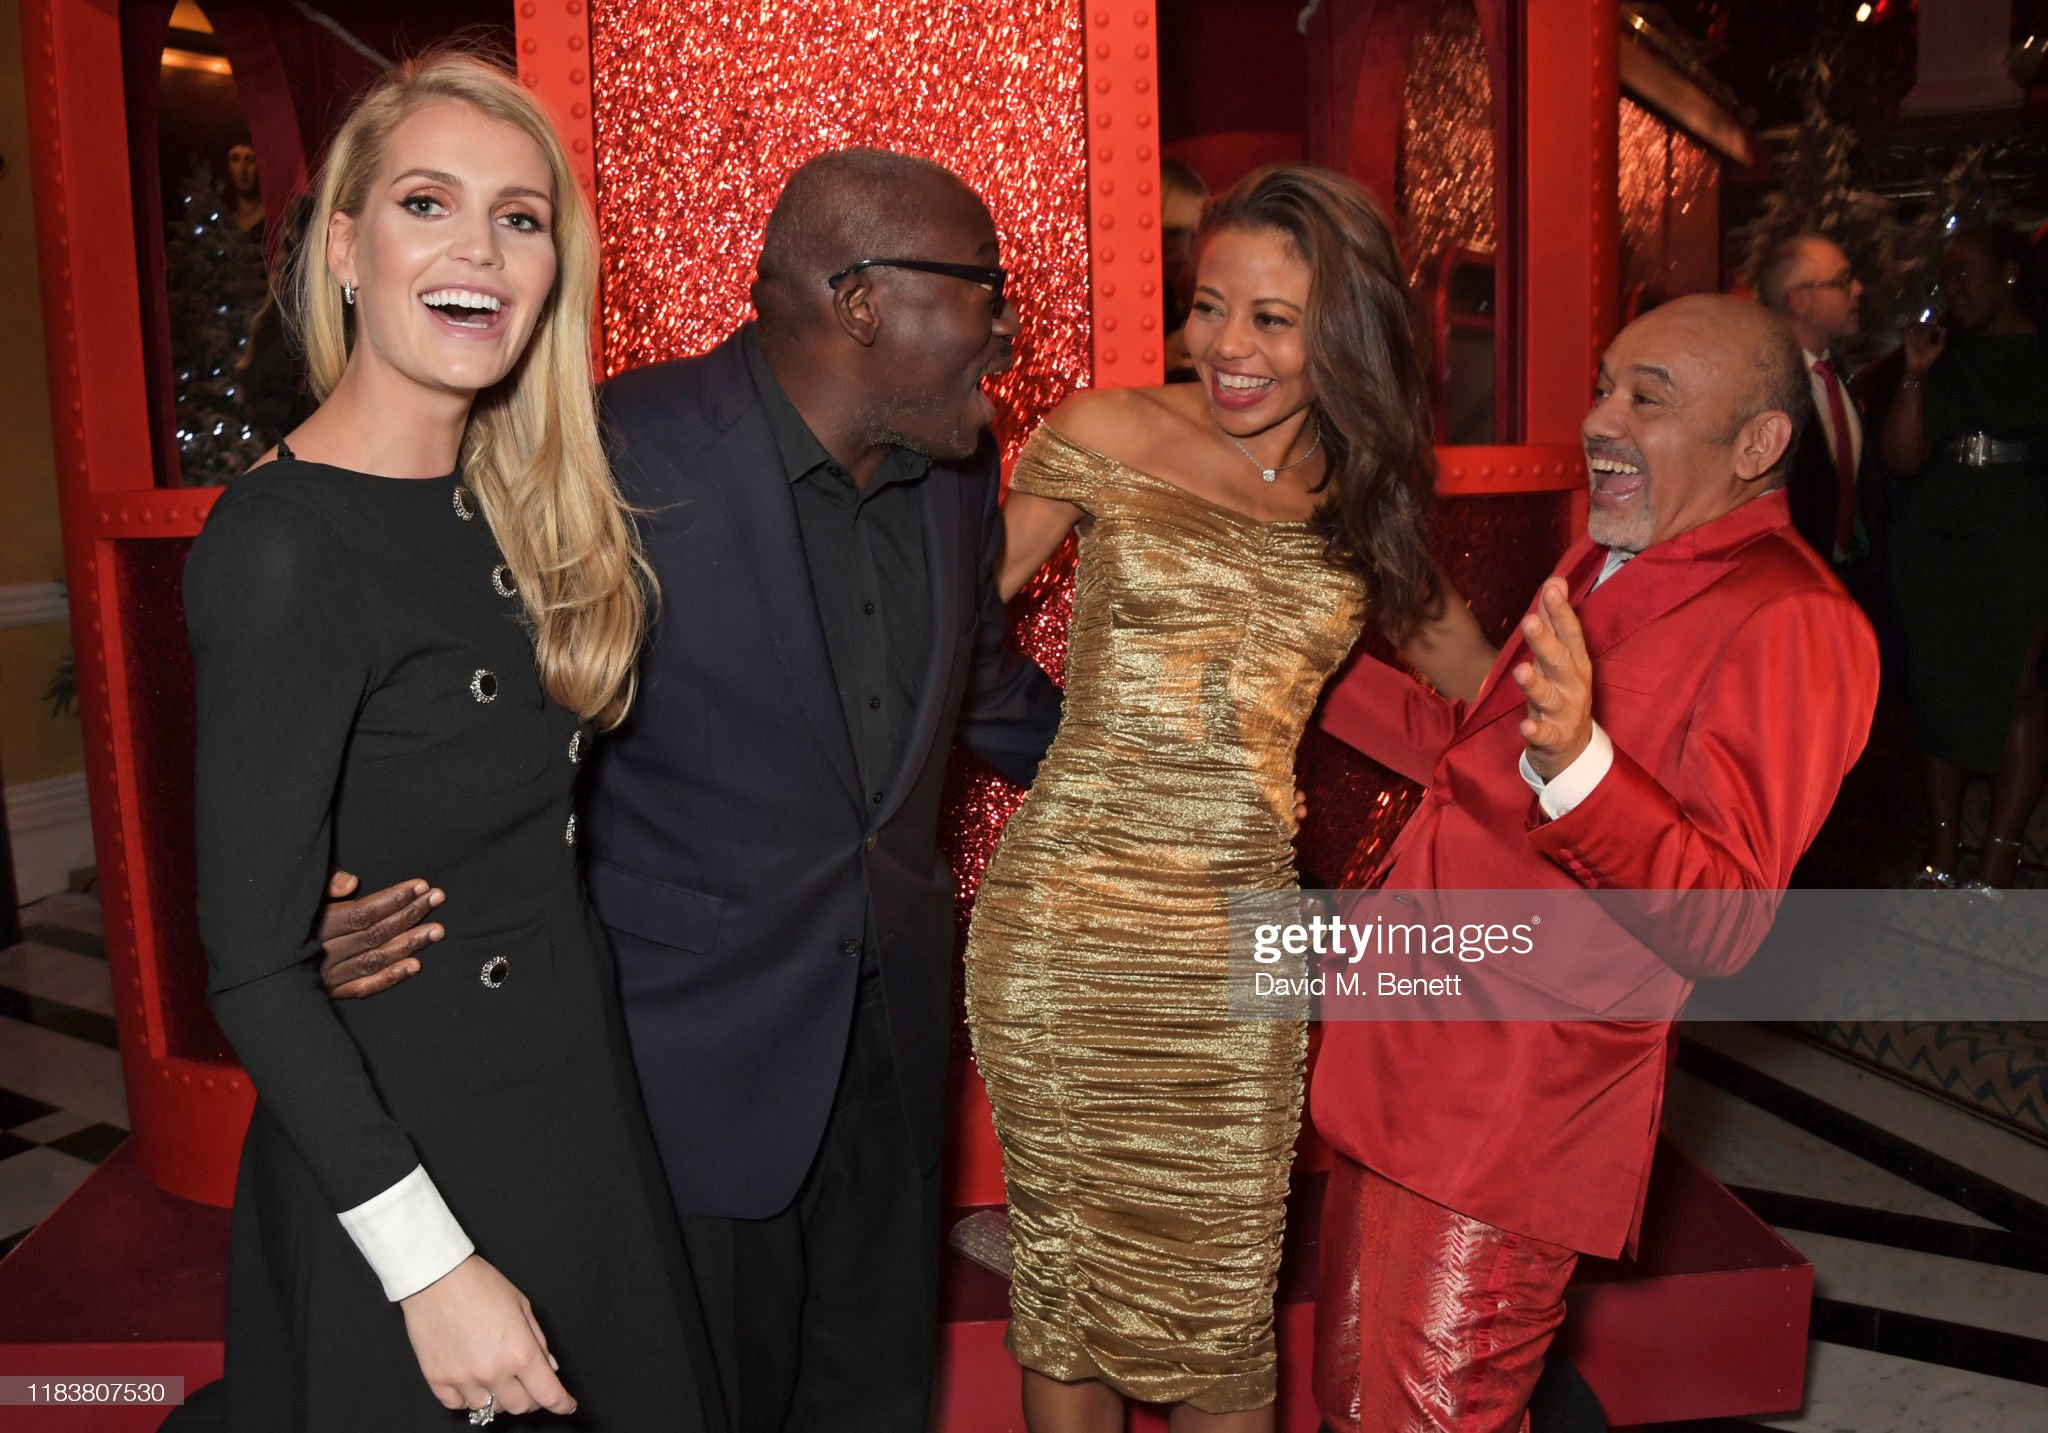 https://media.gettyimages.com/photos/lady-kitty-spencer-edward-enninful-emma-weymouth-and-christian-the-picture-id1183807530?s=2048x2048